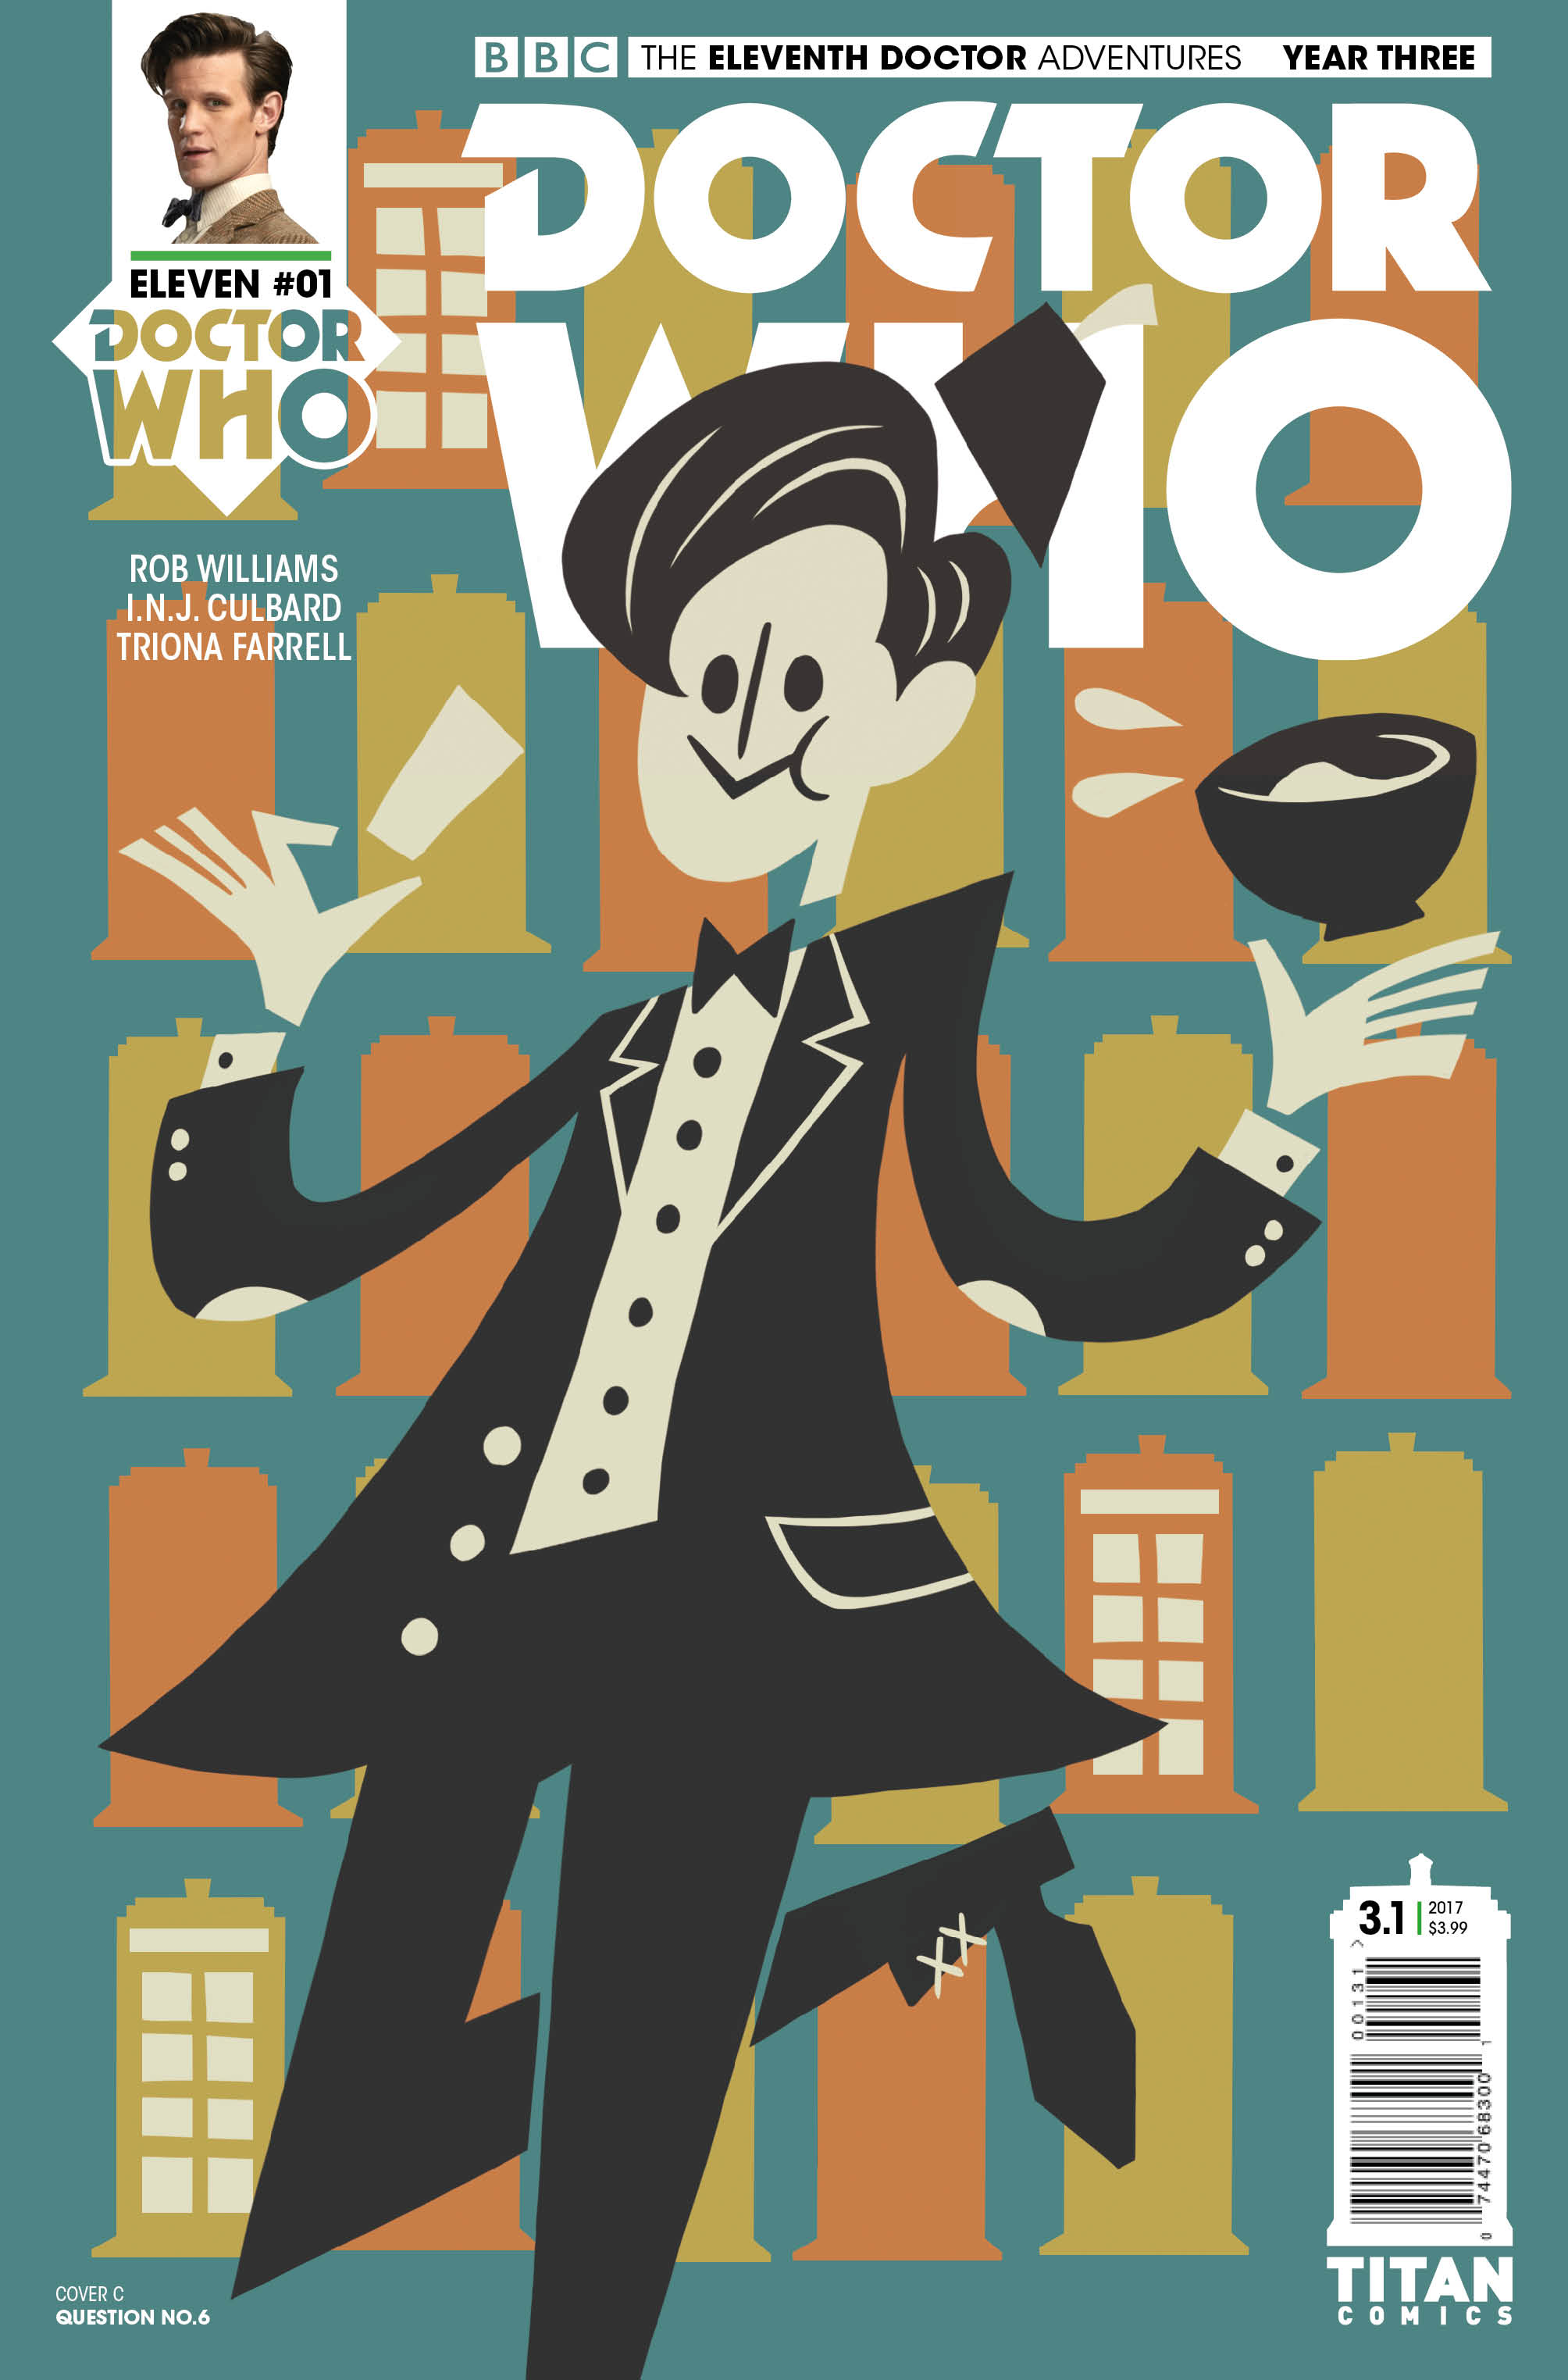 ELEVENTH DOCTOR YEAR THREE #1 Cover_C_Question_No_6 (Credit: Titan)